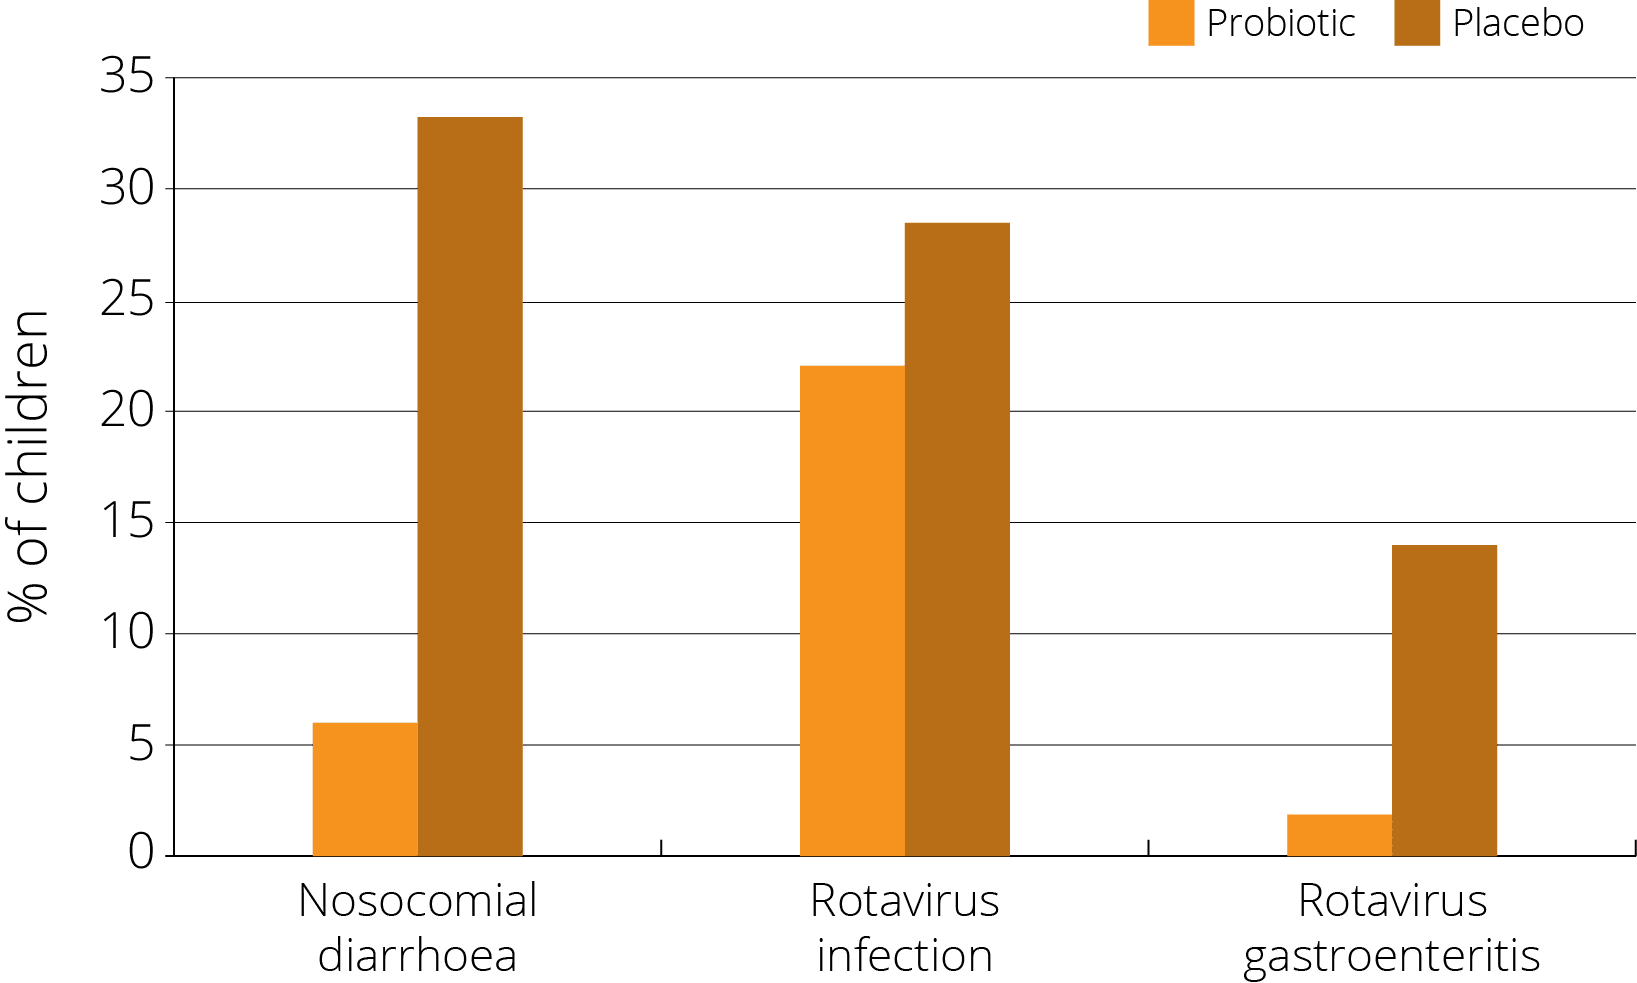 graph trial results strain v's placebo